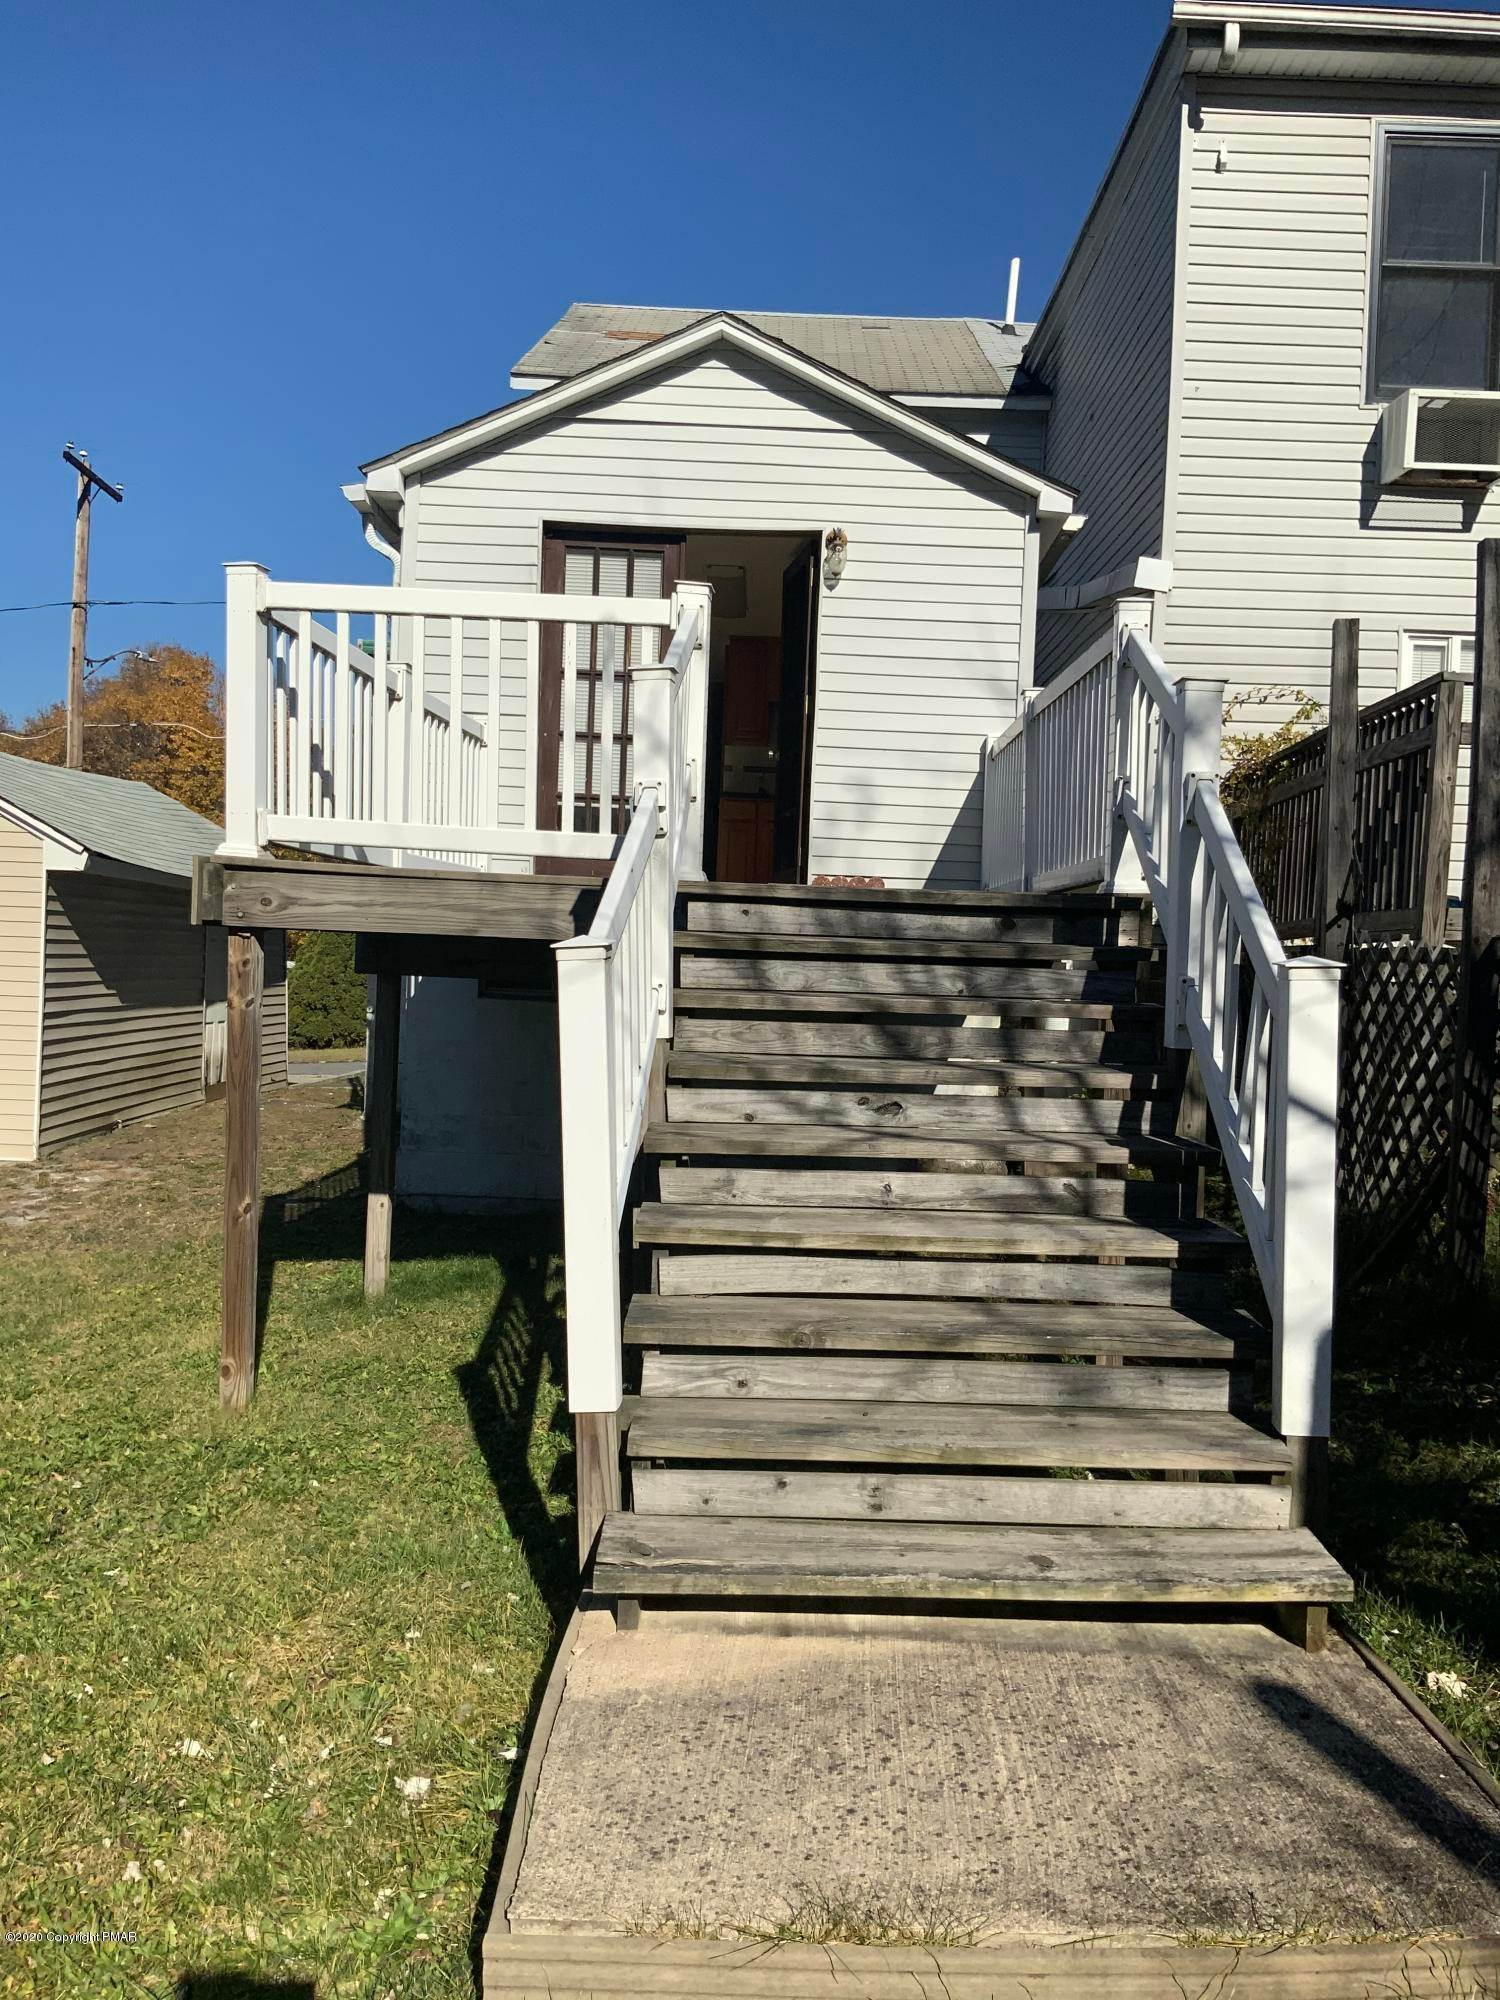 2. Single Family Homes for Sale at 18 Andrewsville St Lansford, Pennsylvania 18232 United States